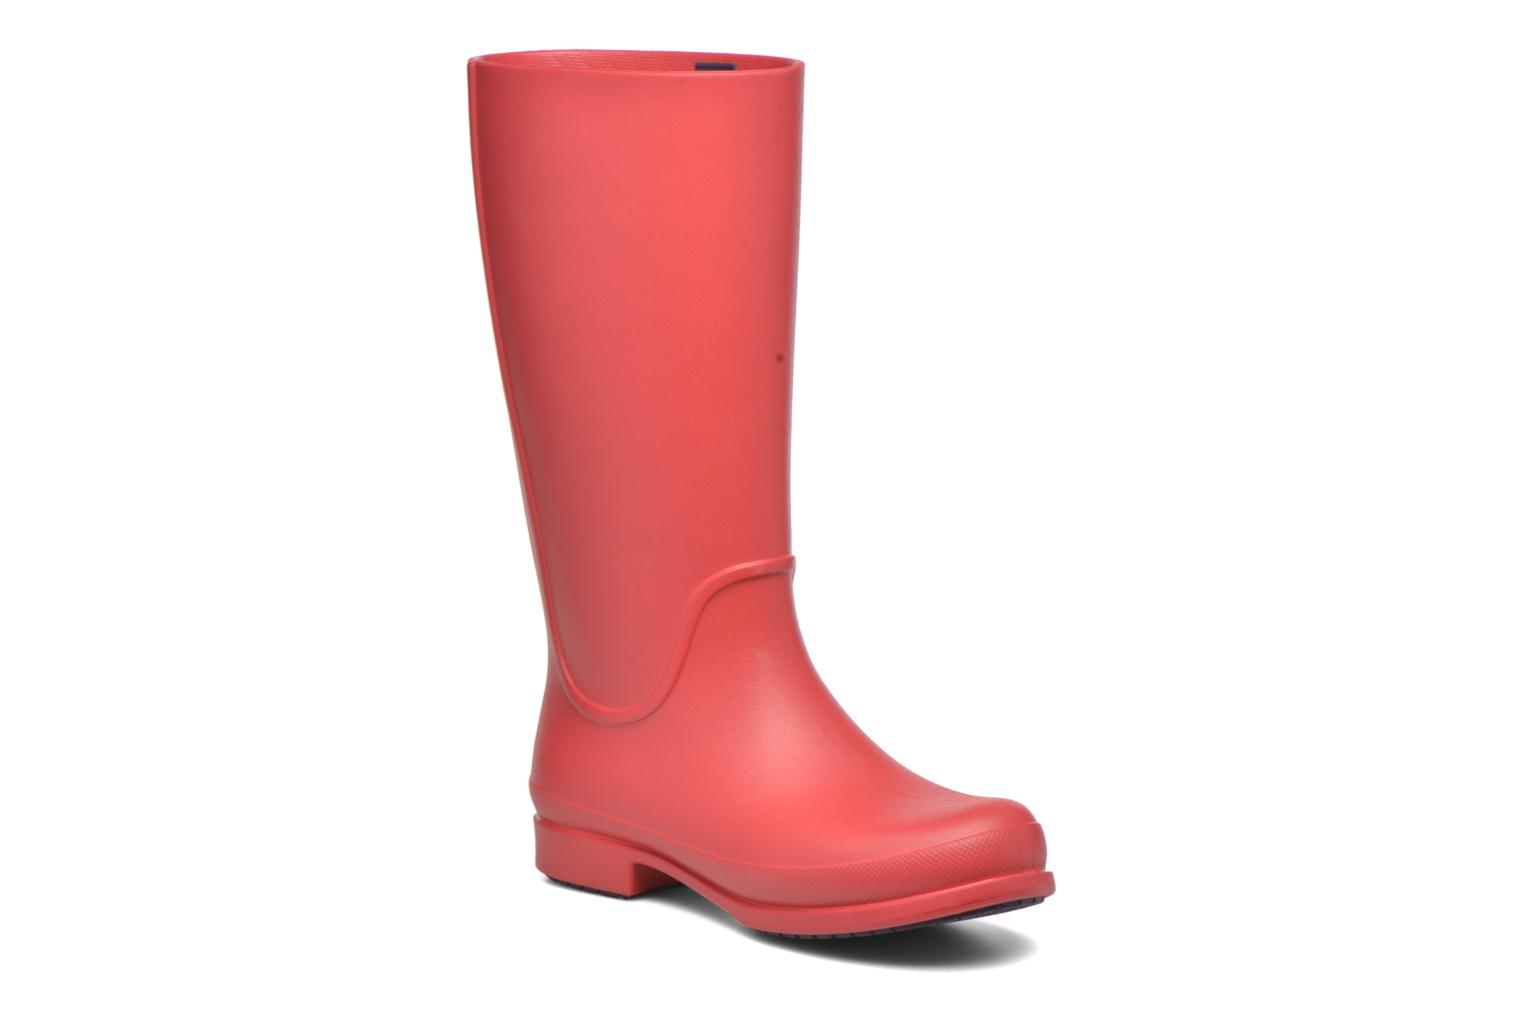 Wellie Rain Boots F Cranberry/Mulberry